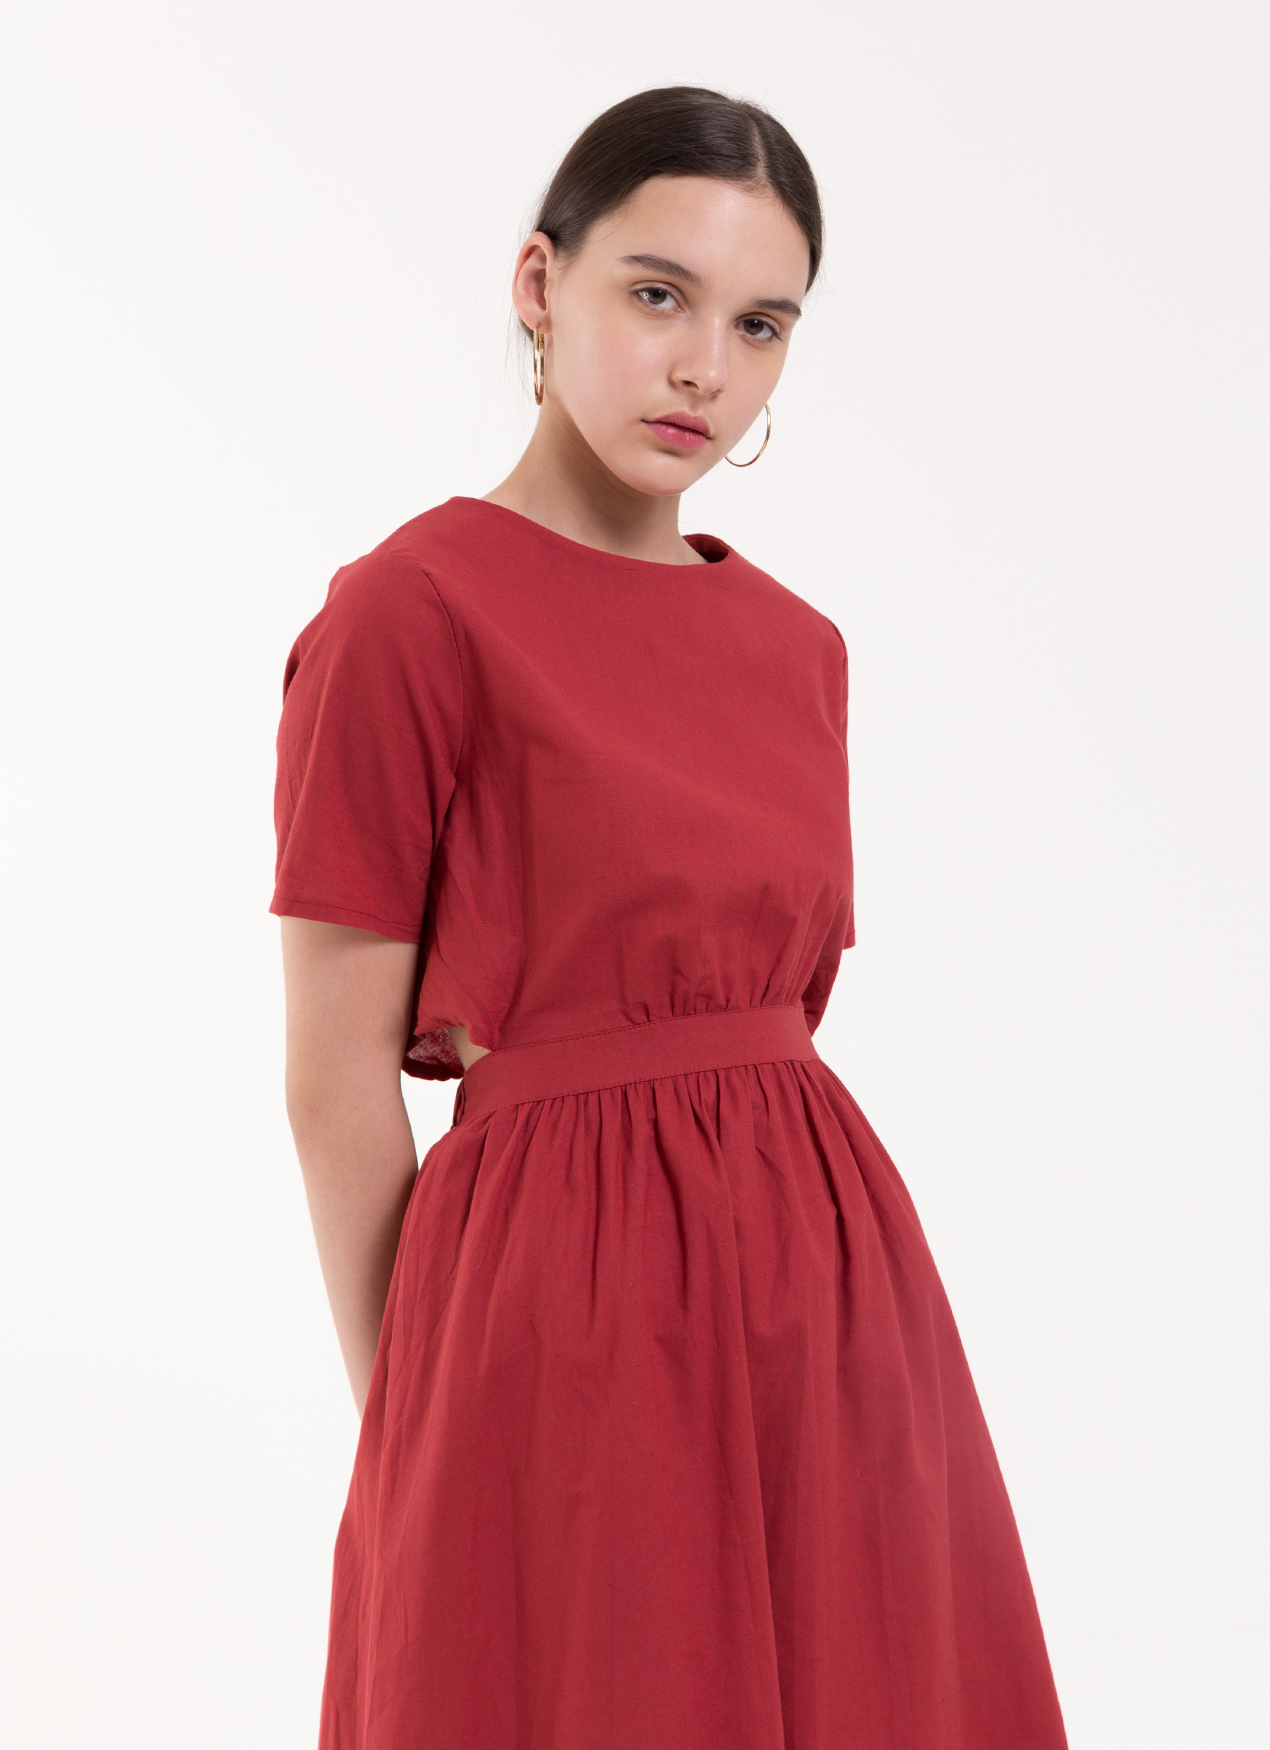 BOWN Lexi Dress - Red